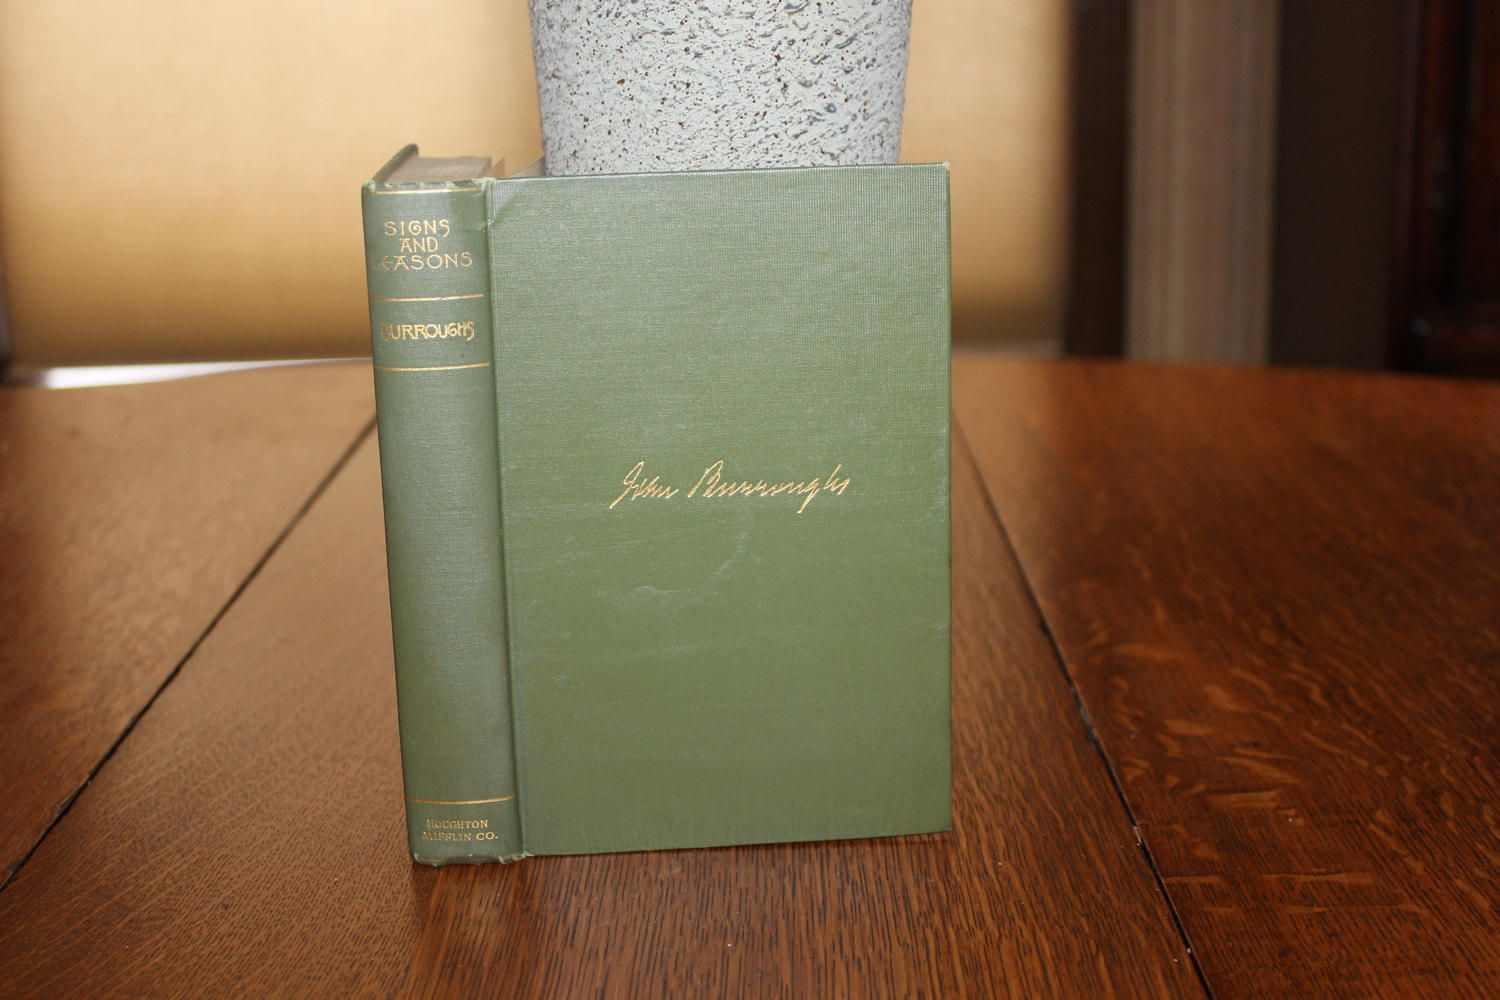 Signs And Seasons By John Burroughs Vintage Book Antique Book Green Book Green And Gold Green Decor By Carishome O Antique Books Green Books Vintage Books